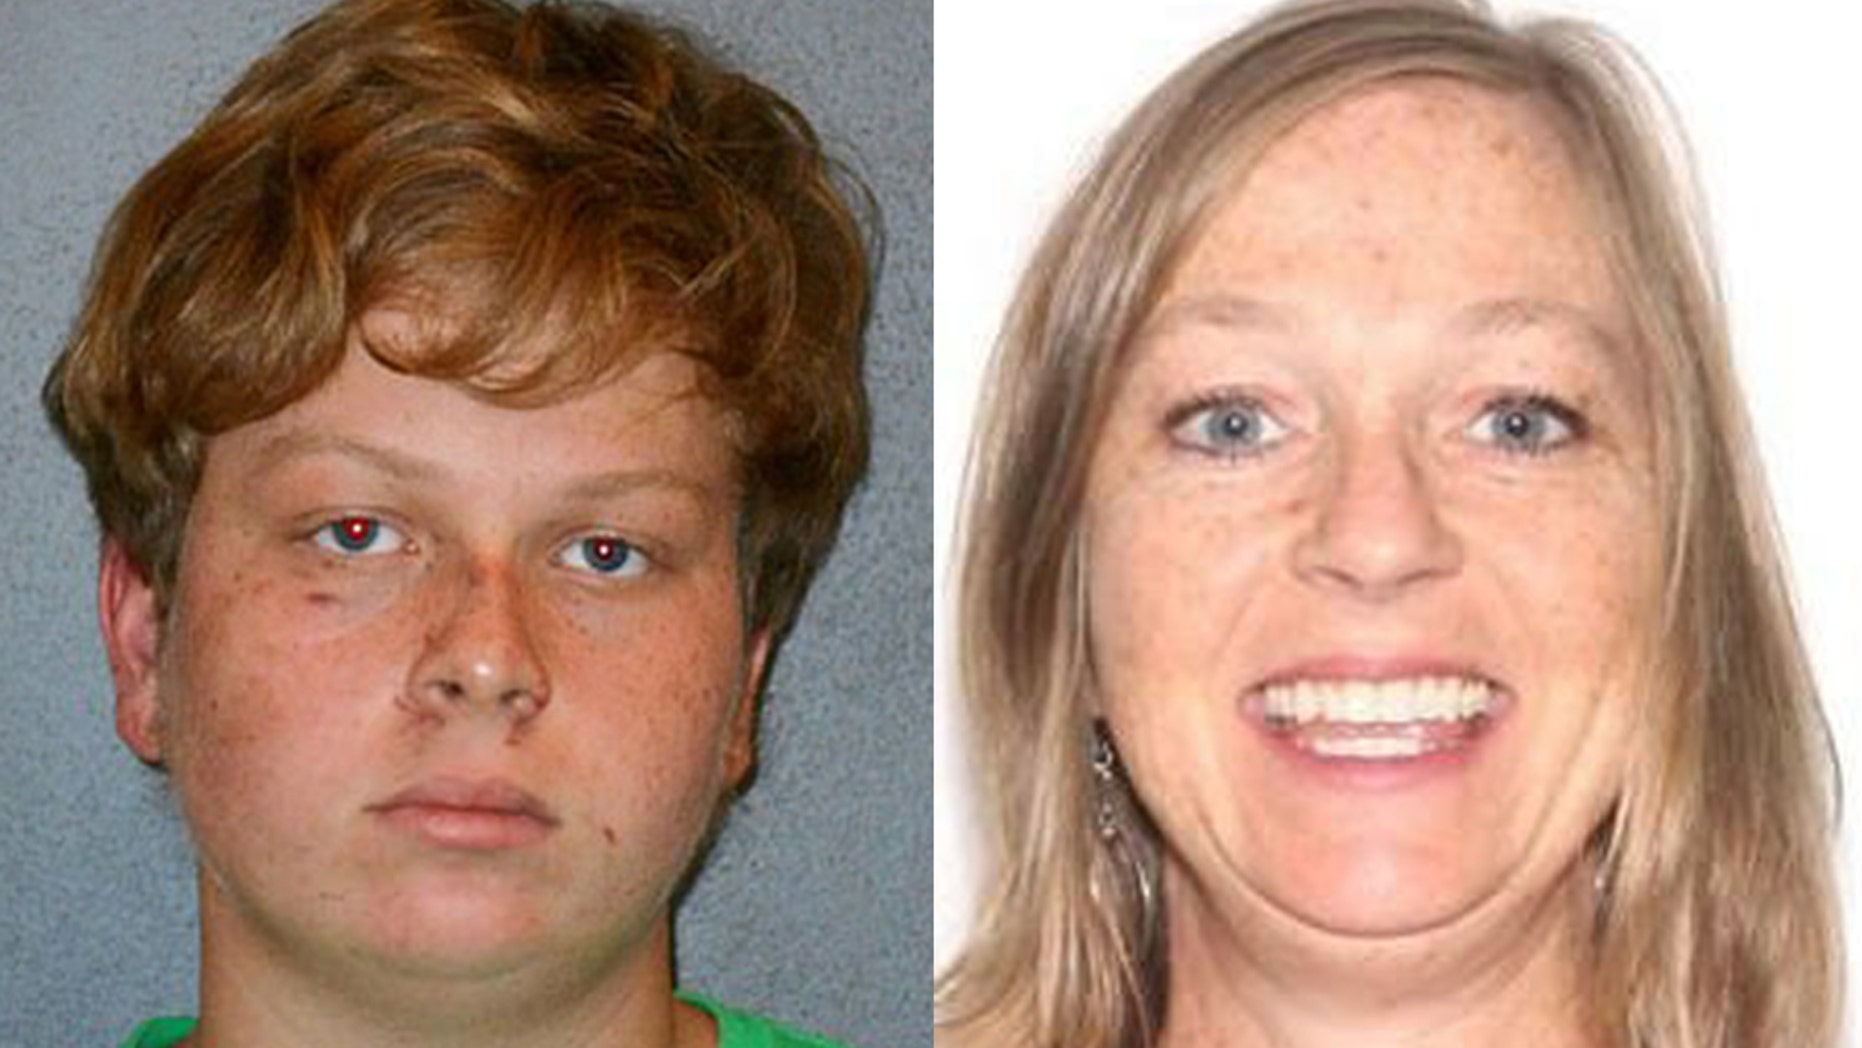 Florida teen kills mother after dispute over his grades